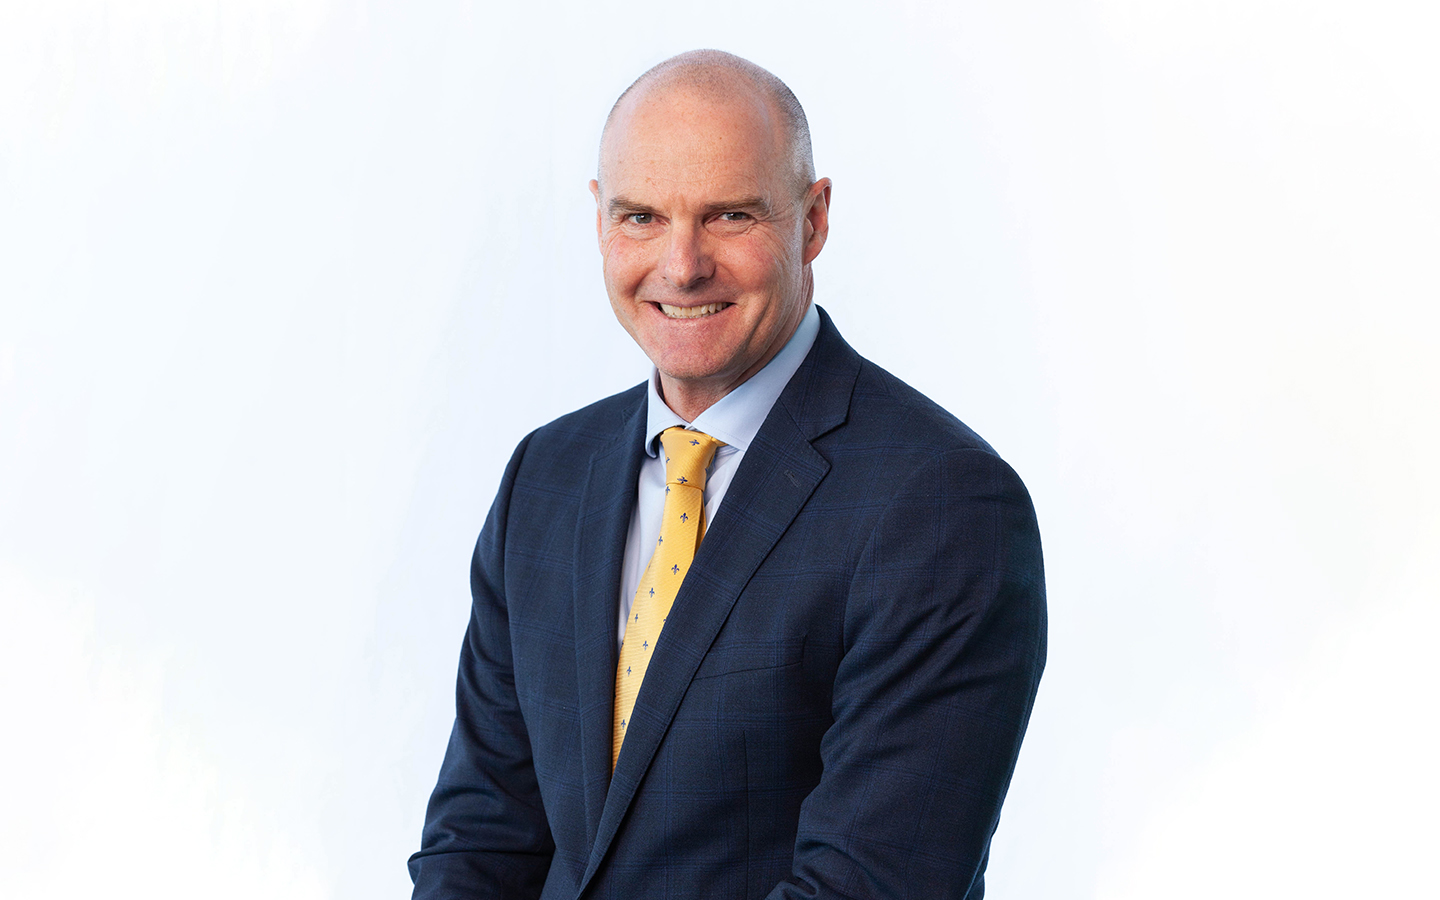 Senior Vice President, Supply Chain & Operational Excellence Greg Bodkin